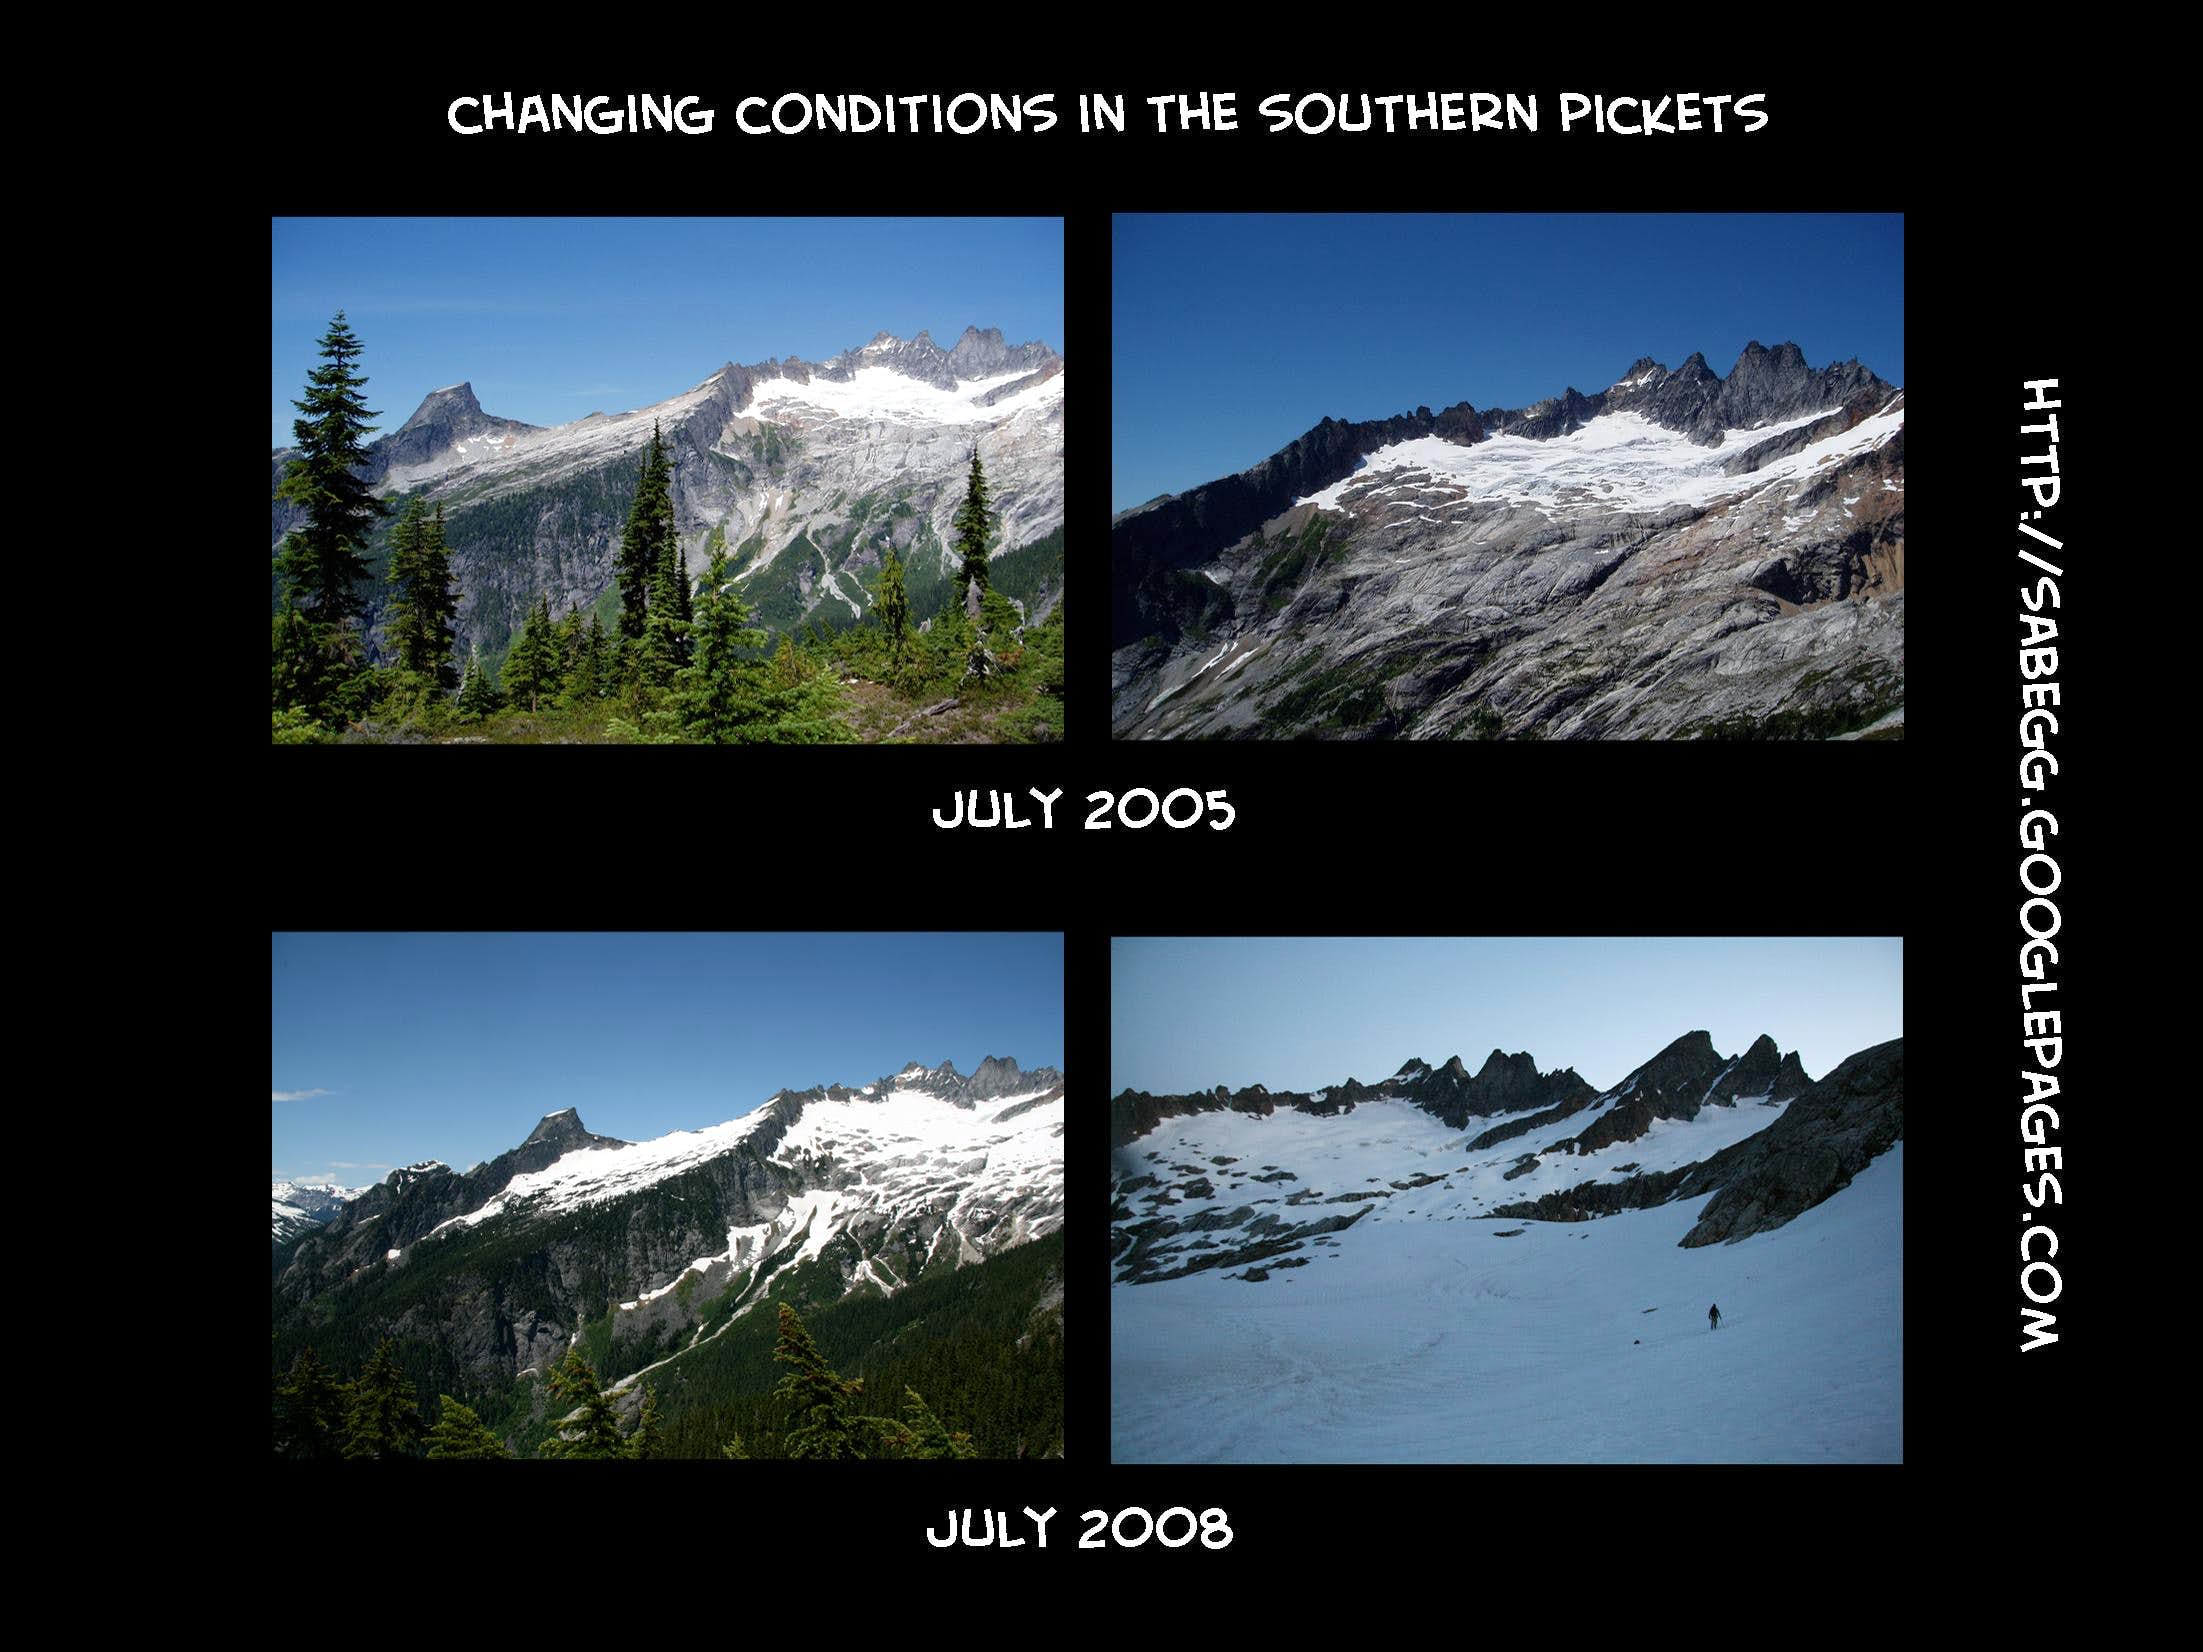 30 years of change in the mountains: photo comparisions